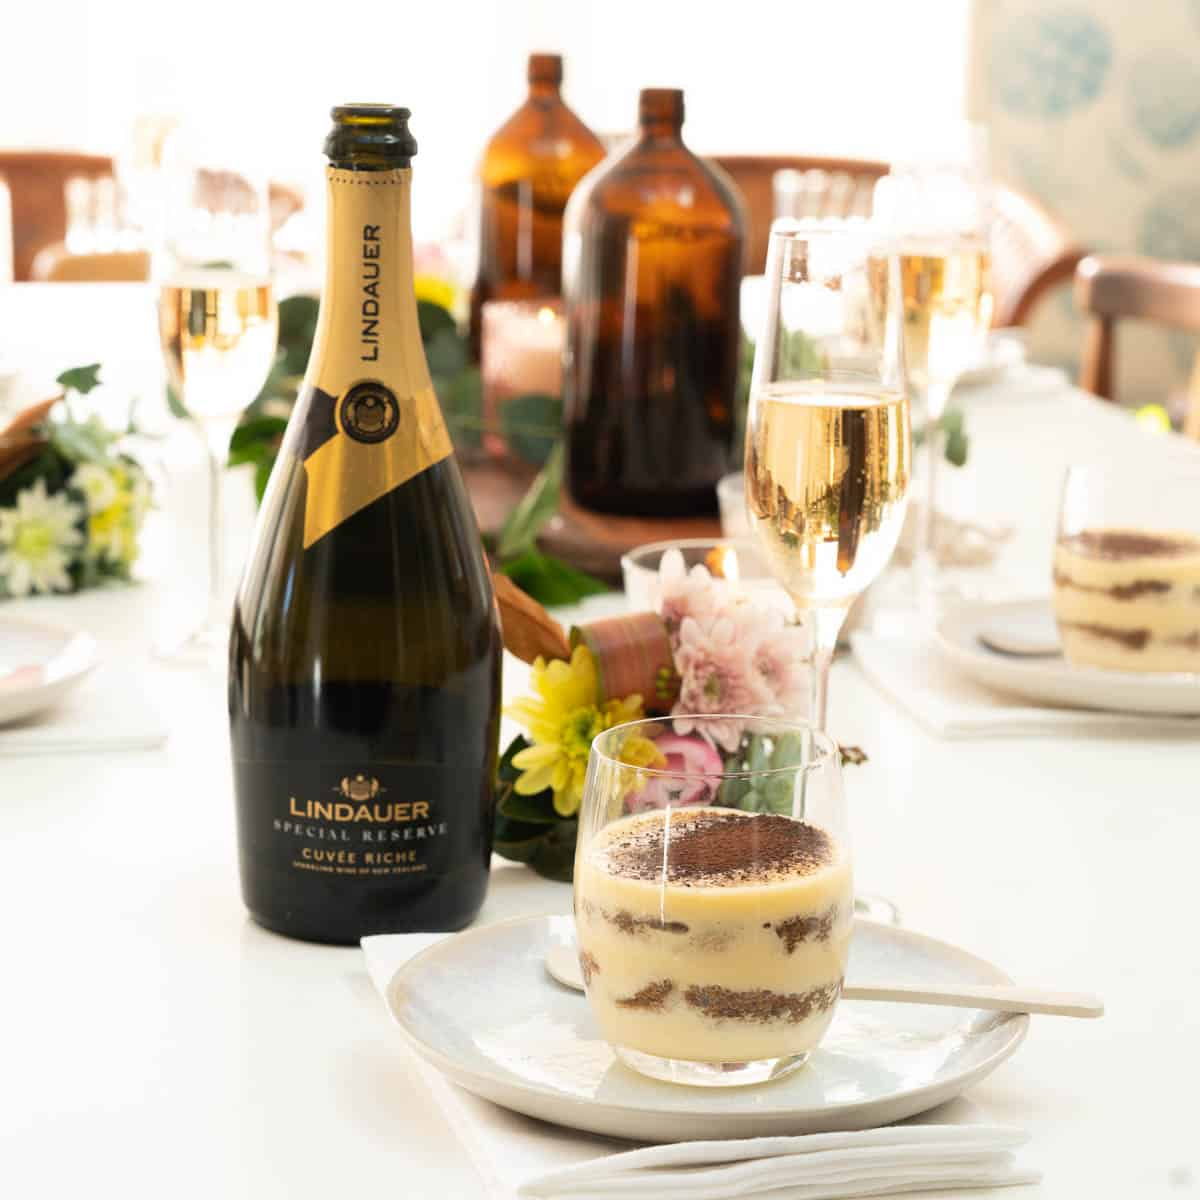 Tiramisu served in a glass, on a table set for a dinner party, a bottle of sparkling wine in the background.